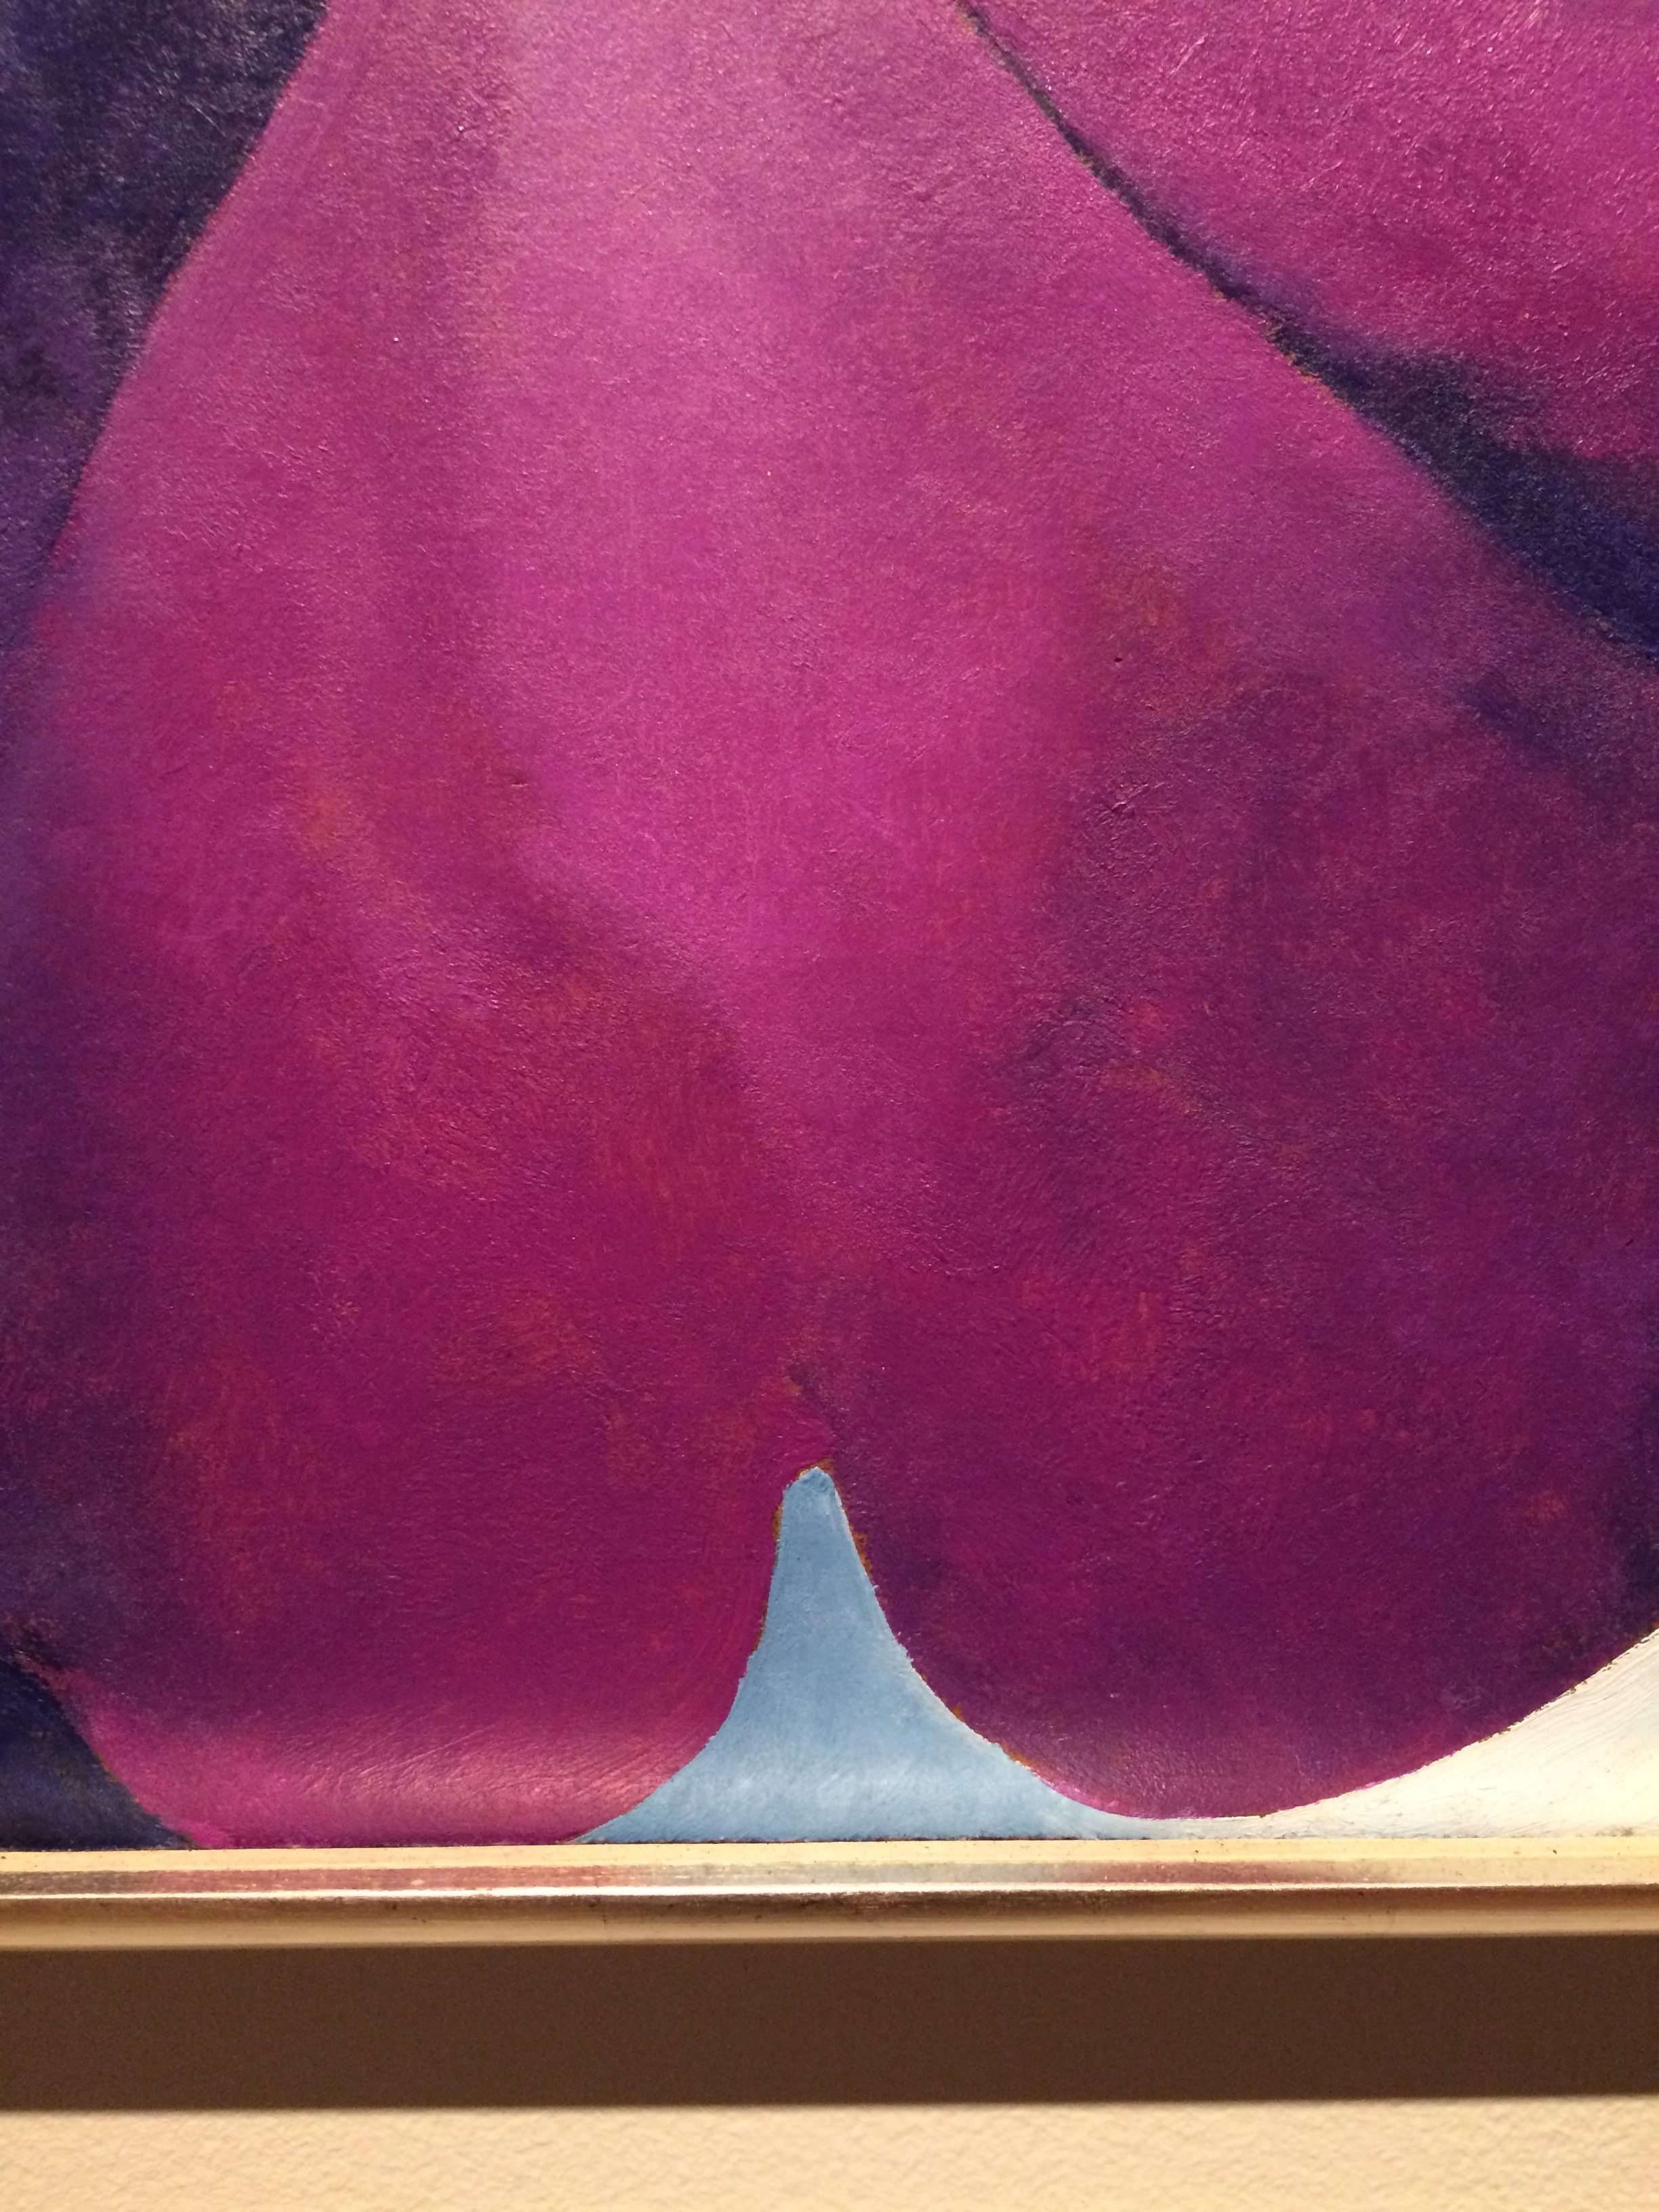 Recently went to the De Young museum in SF where they have one of her Petunias paintings. Her brushwork is incredible!